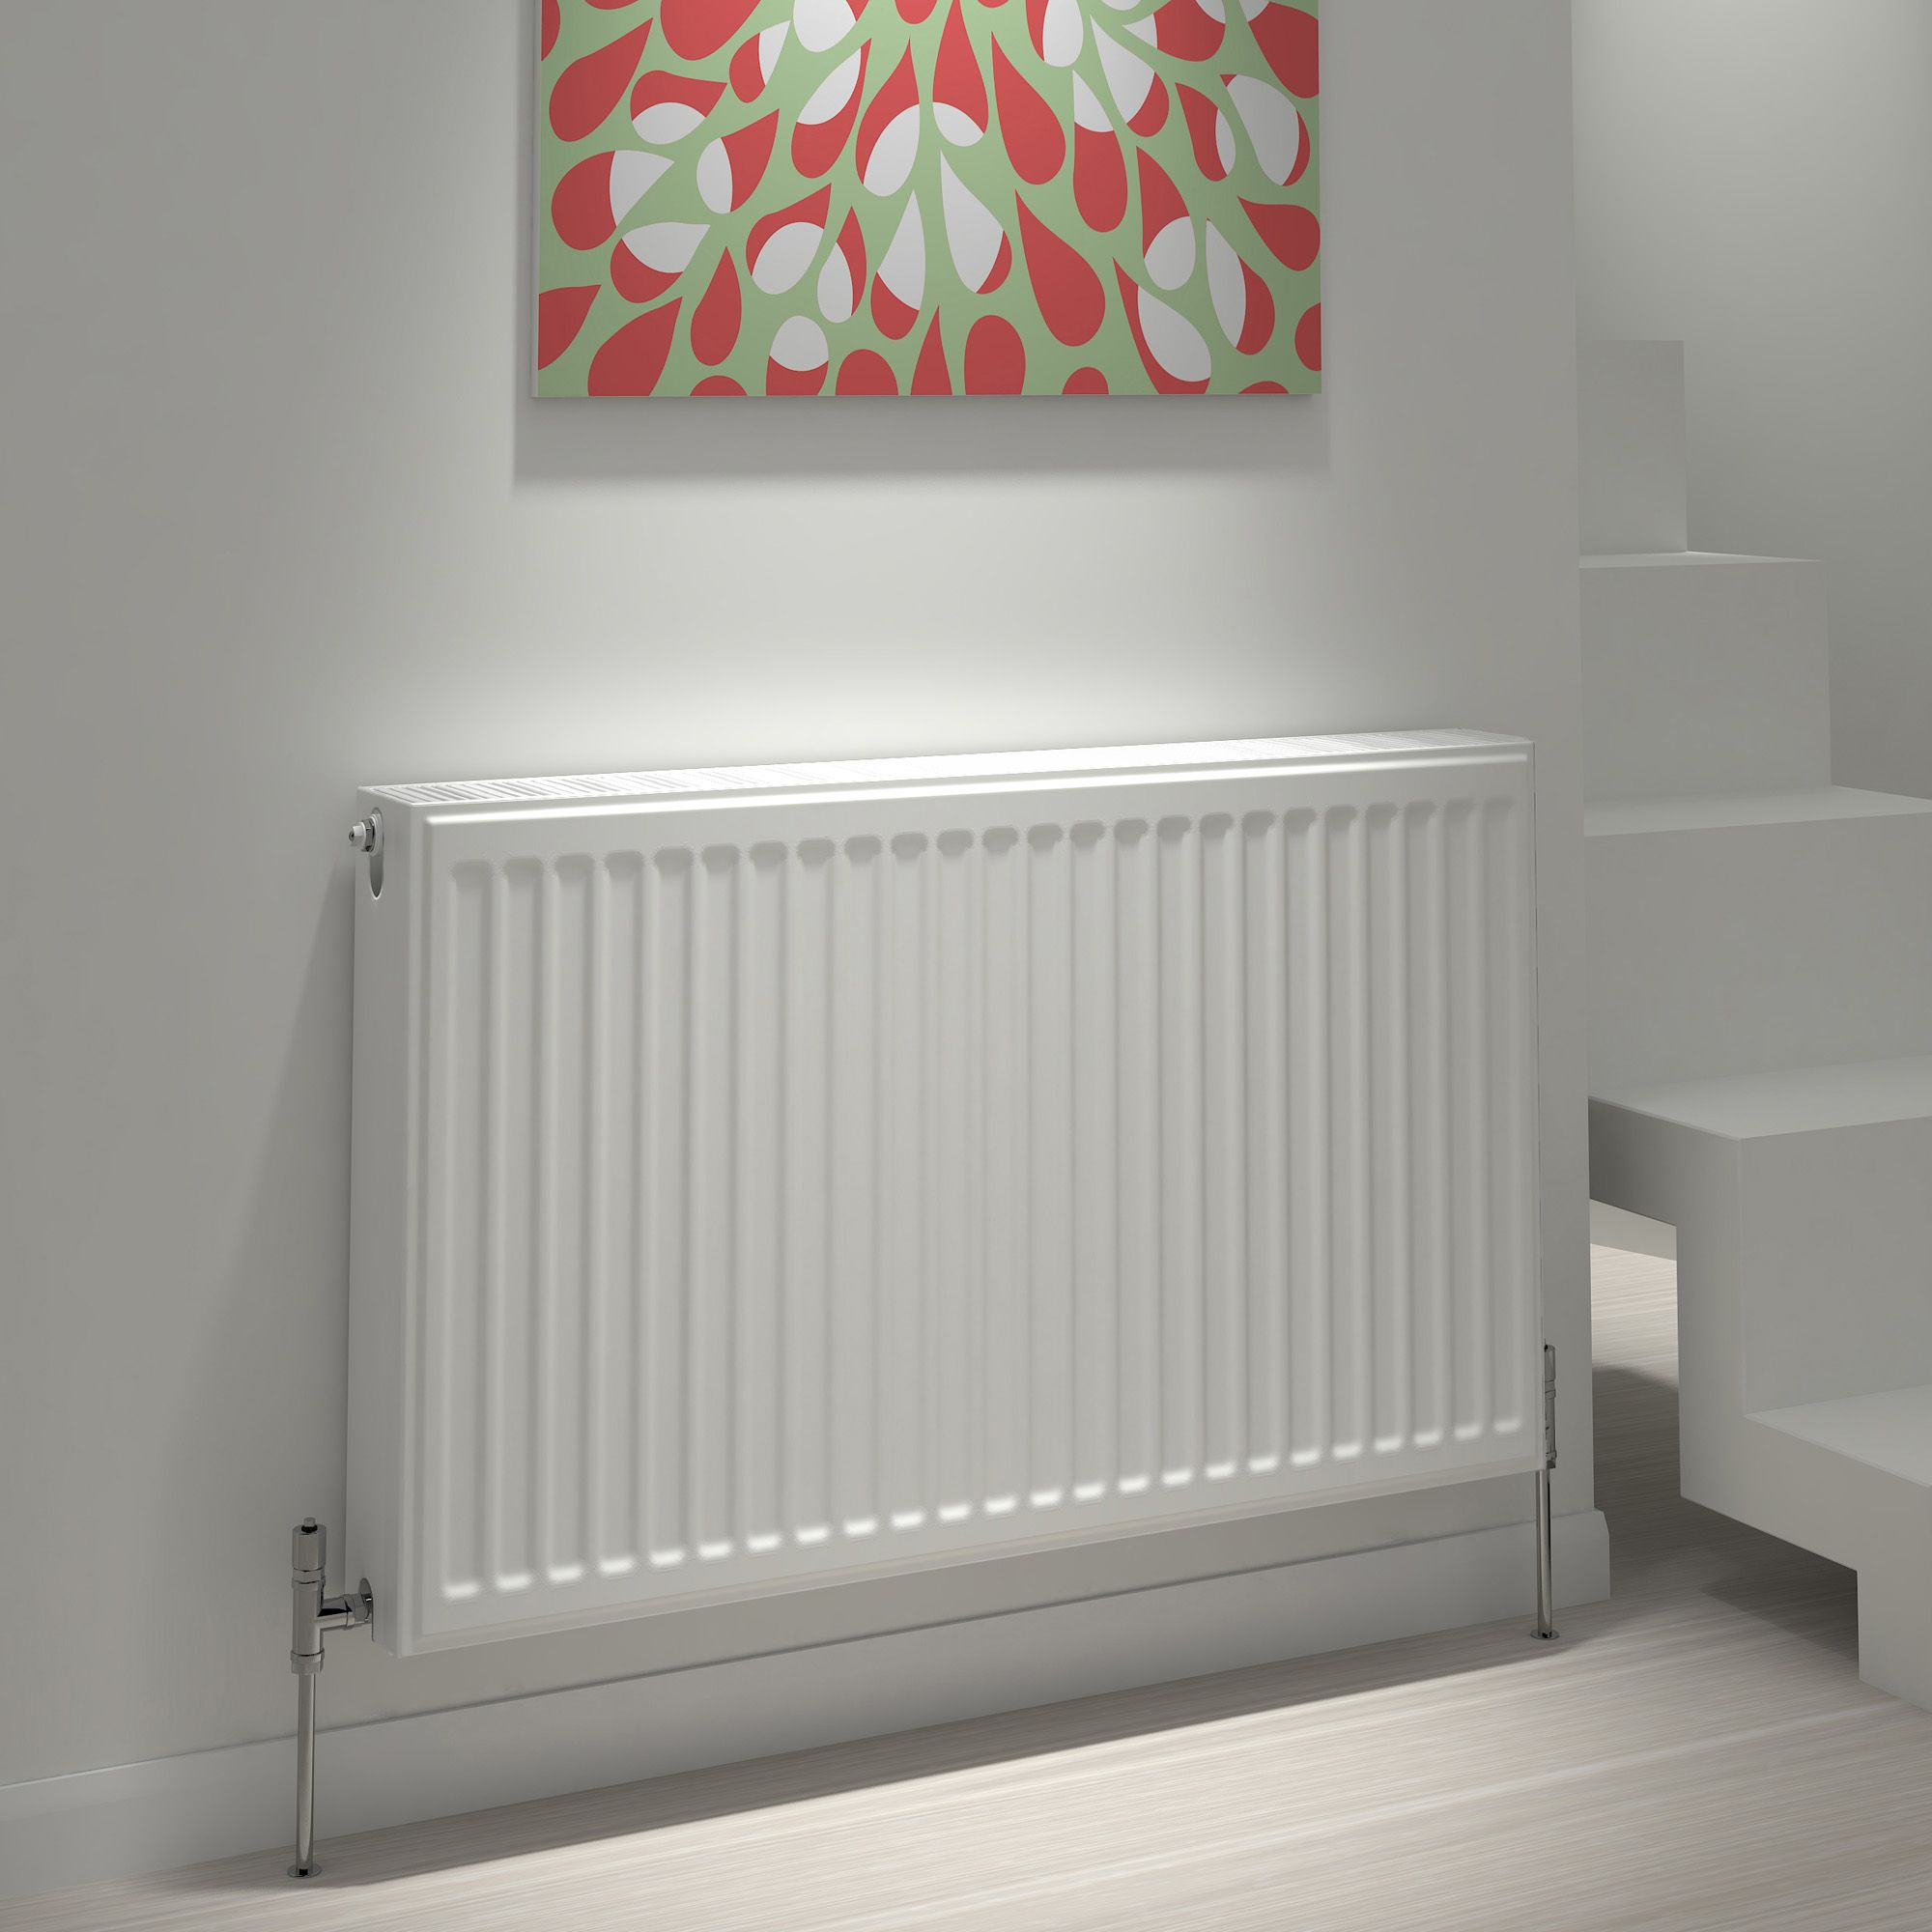 Kudox Type 21 Double Plus Panel Radiator White H500mm W900mm Wiring Diagram House To Shed Departments Diy At Bq